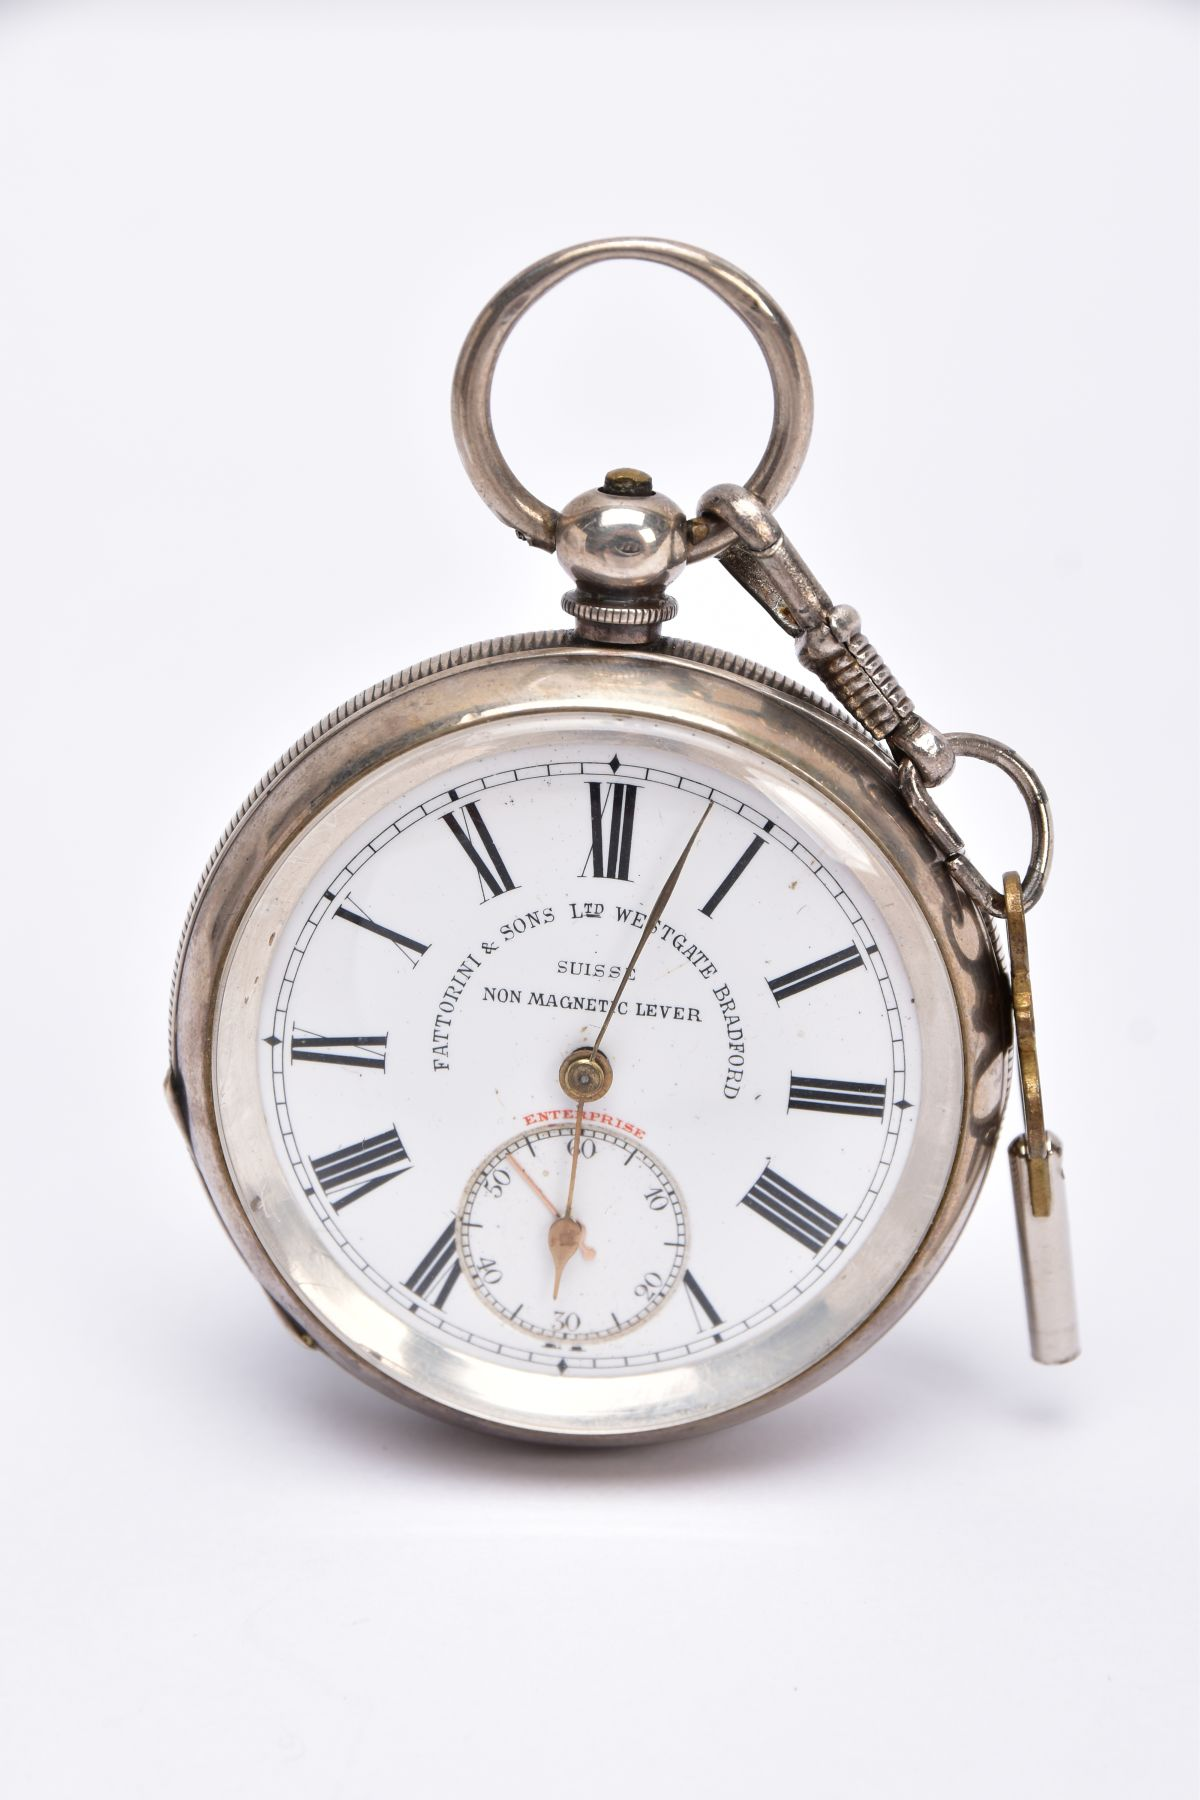 AN EARLY GEORGE V OPEN FACED SILVER POCKET WATCH, white dial signed 'Fattorini & Sons Ltd, Westgate,